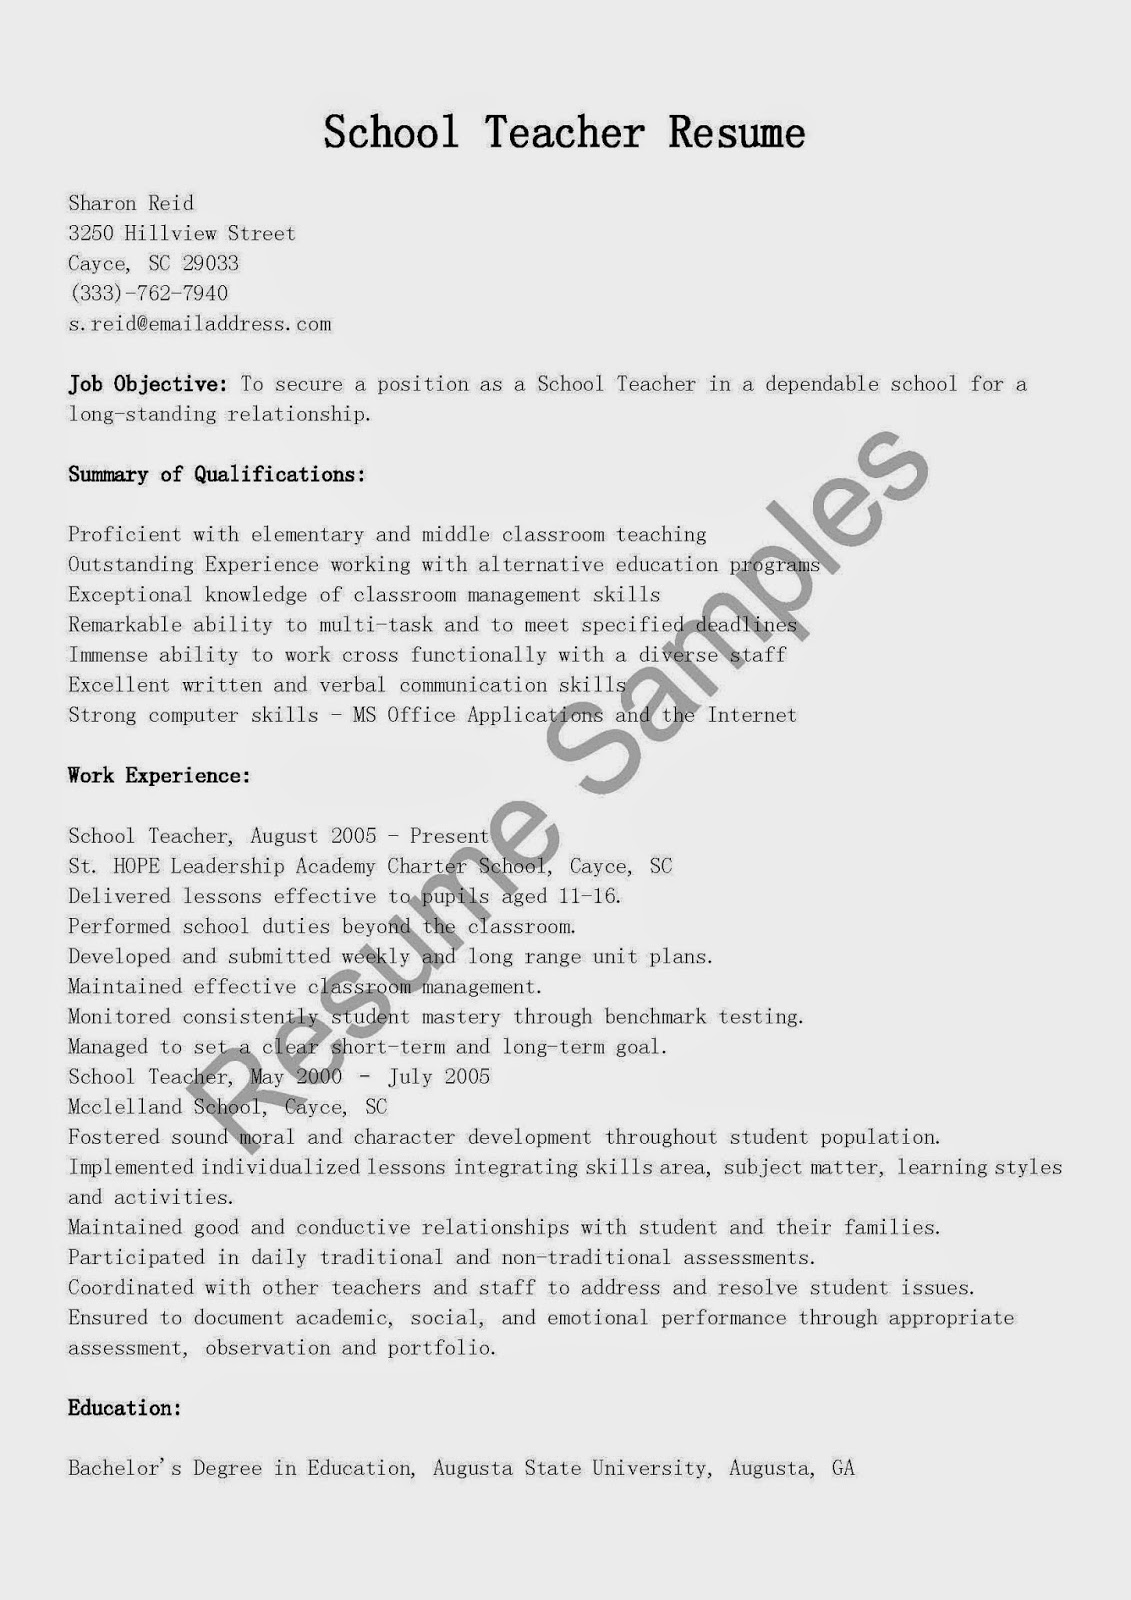 How Long Should A Teacher Resume Be Resume Samples School Teacher Resume Sample